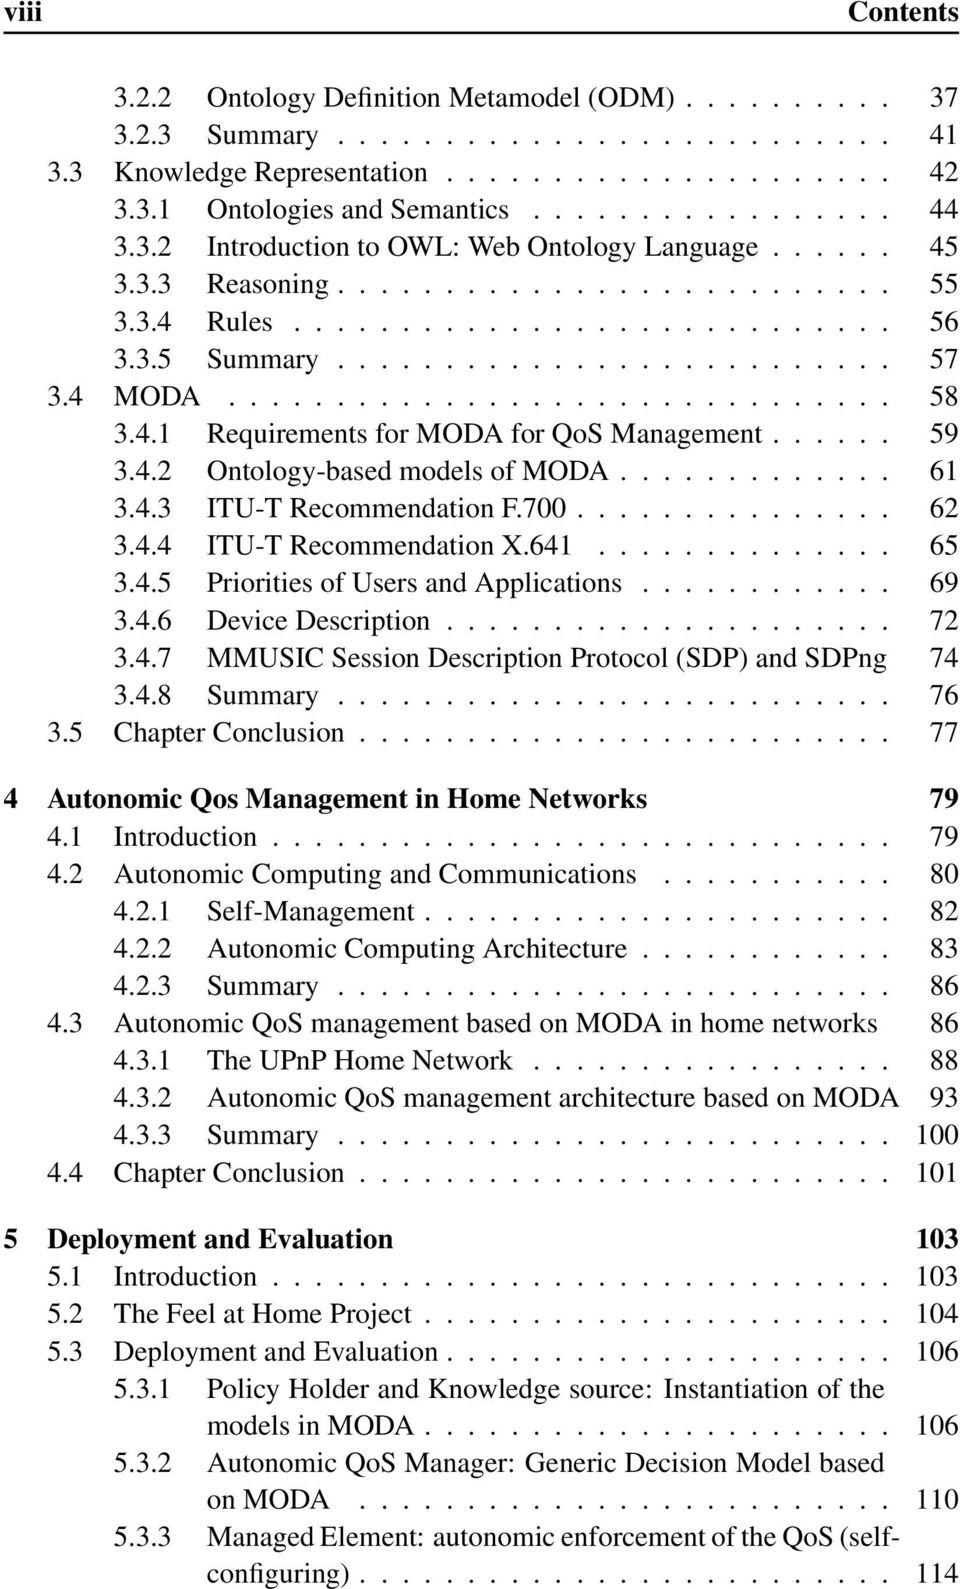 4 MODA............................... 58 3.4.1 Requirements for MODA for QoS Management...... 59 3.4.2 Ontology-based models of MODA............. 61 3.4.3 ITU-T Recommendation F.700............... 62 3.